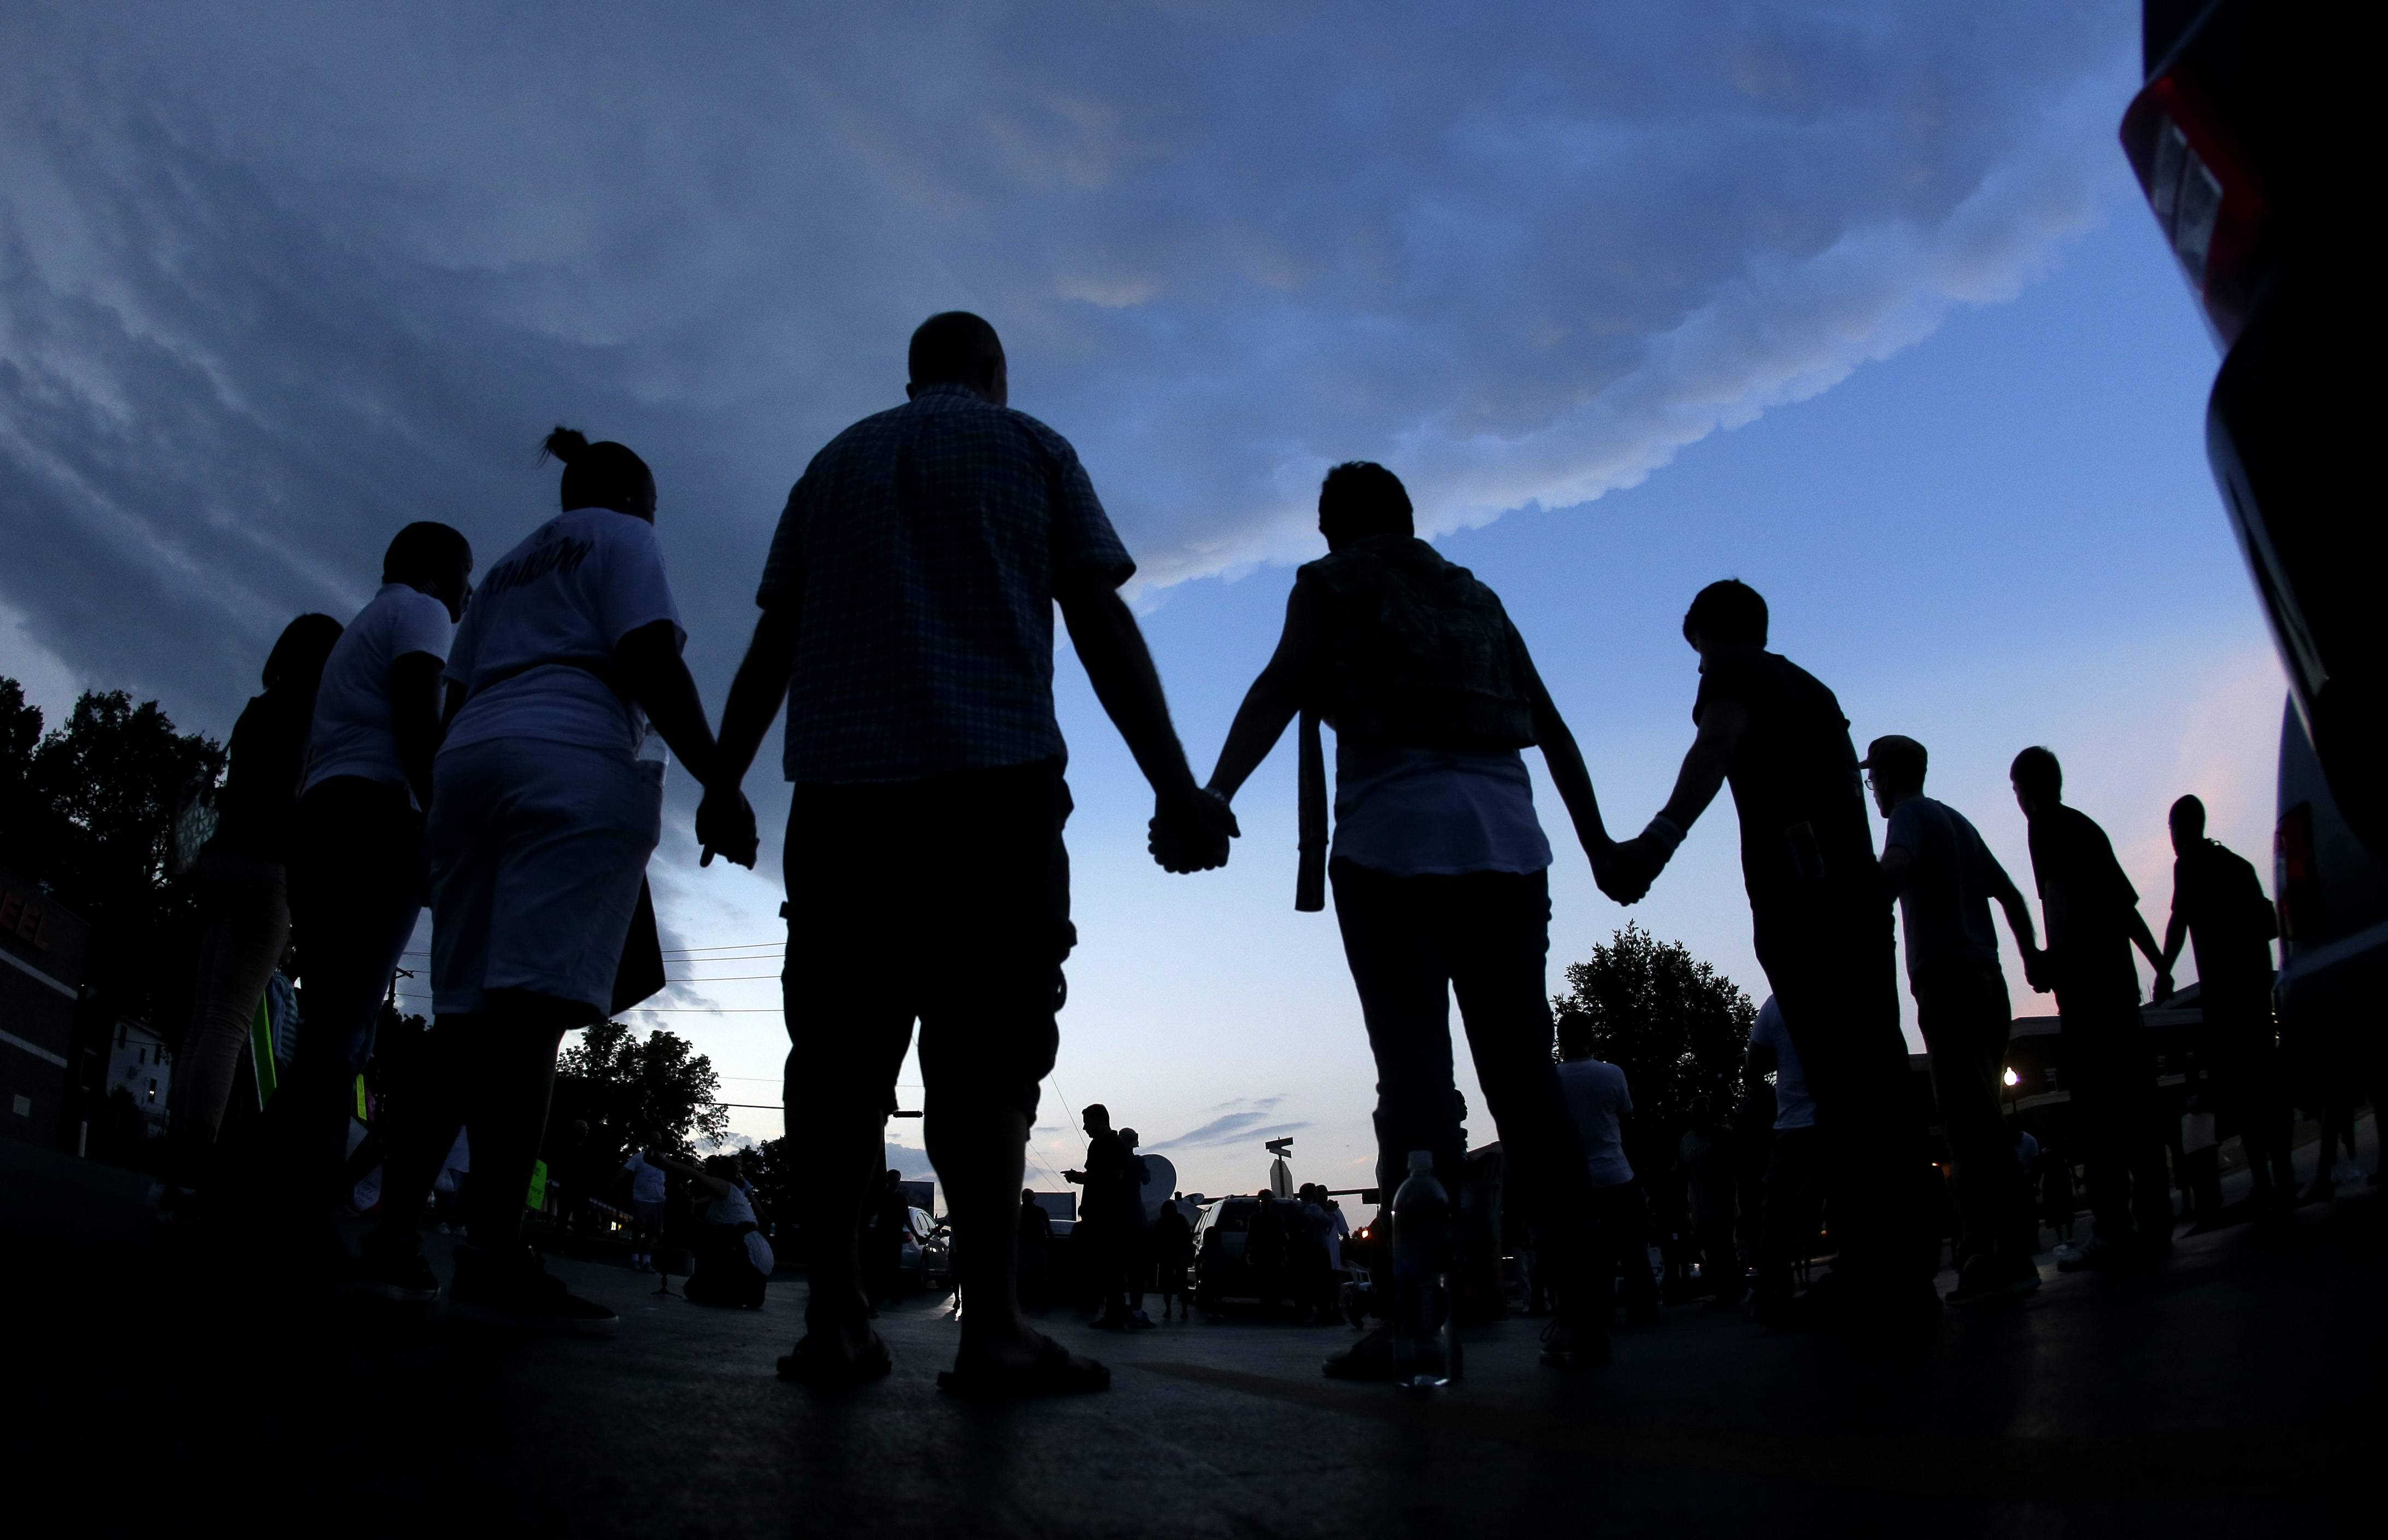 People stand in prayer Wednesday after marching about a mile to the police station to protest the shooting of Michael Brown in Ferguson, Mo. Brown's shooting in the middle of a street Aug 9, by a Ferguson policeman has sparked a more than week of protests, riots and looting in the St. Louis suburb.